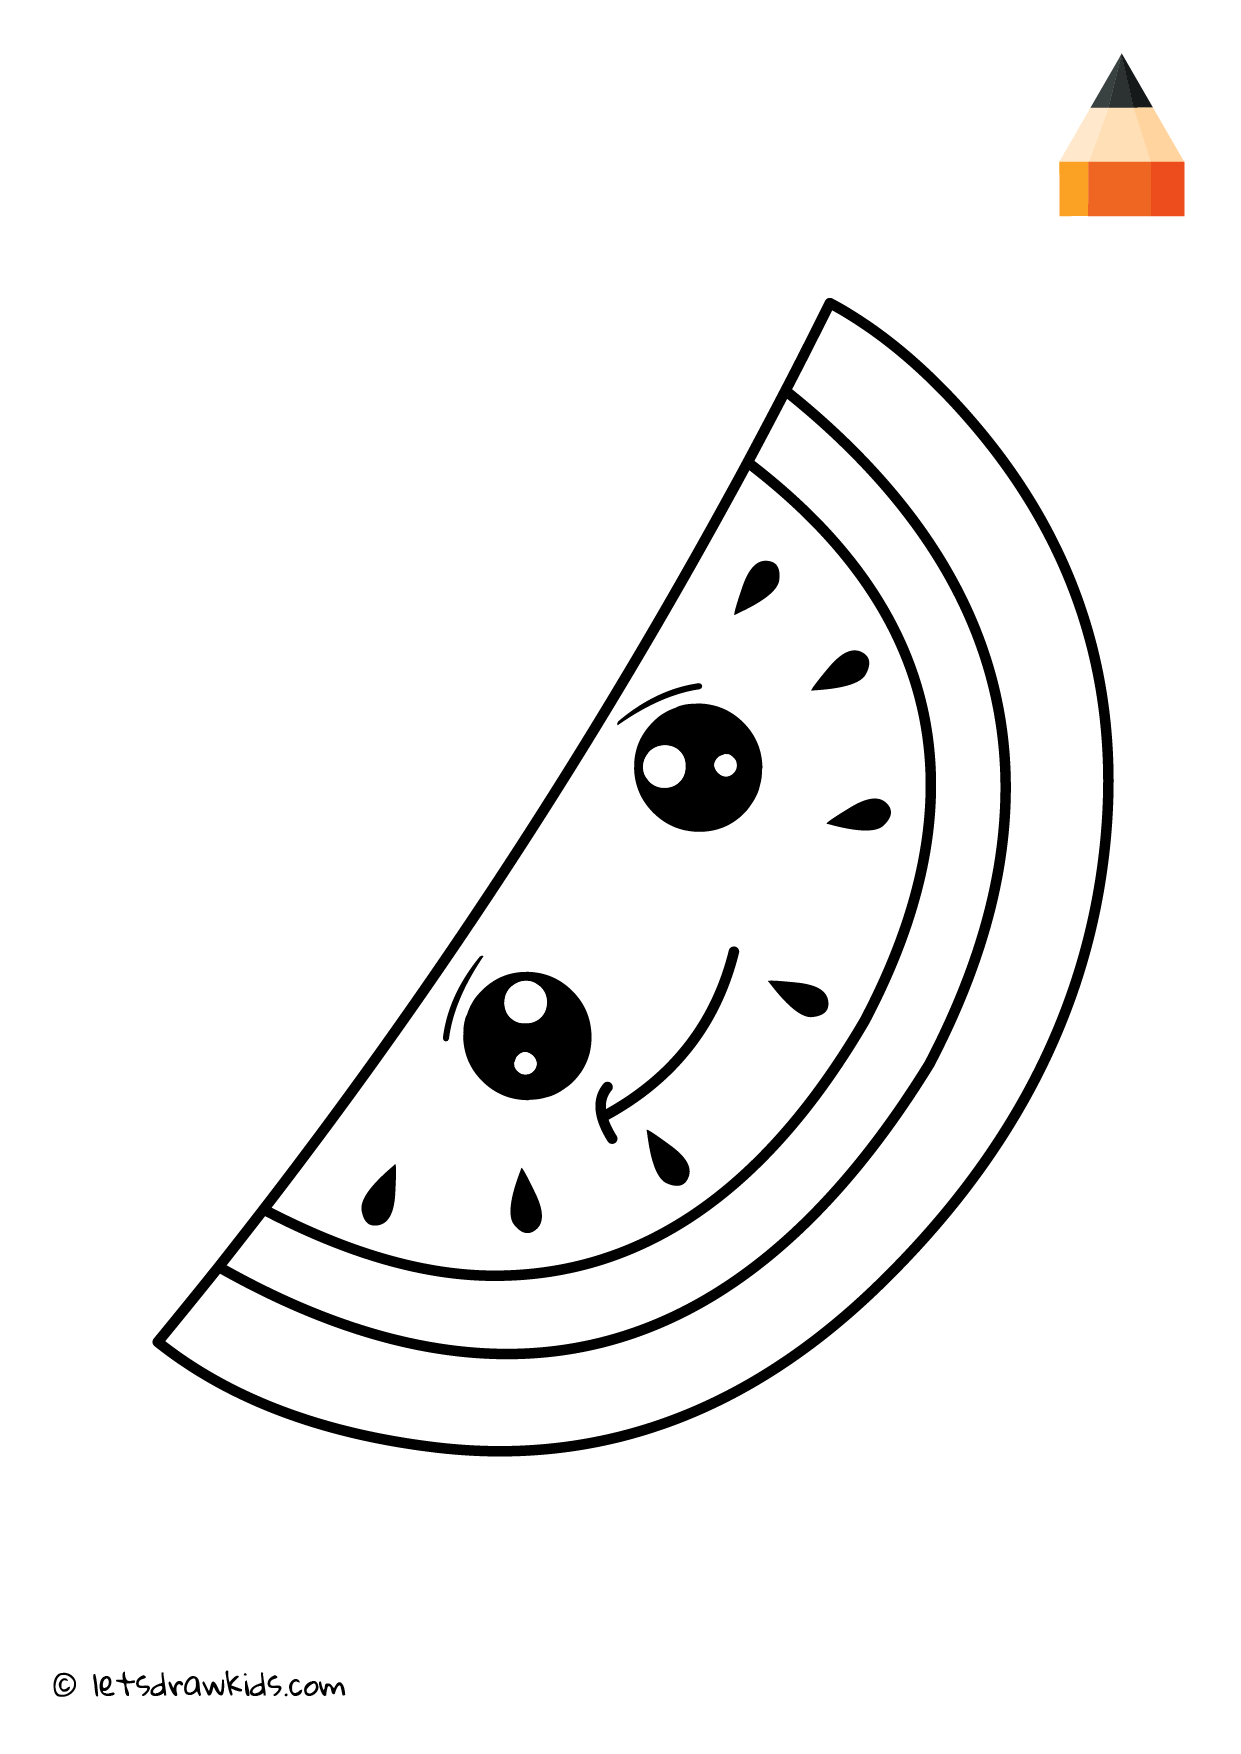 watermelon coloring image coloring page cute watermelon watermelon coloring image